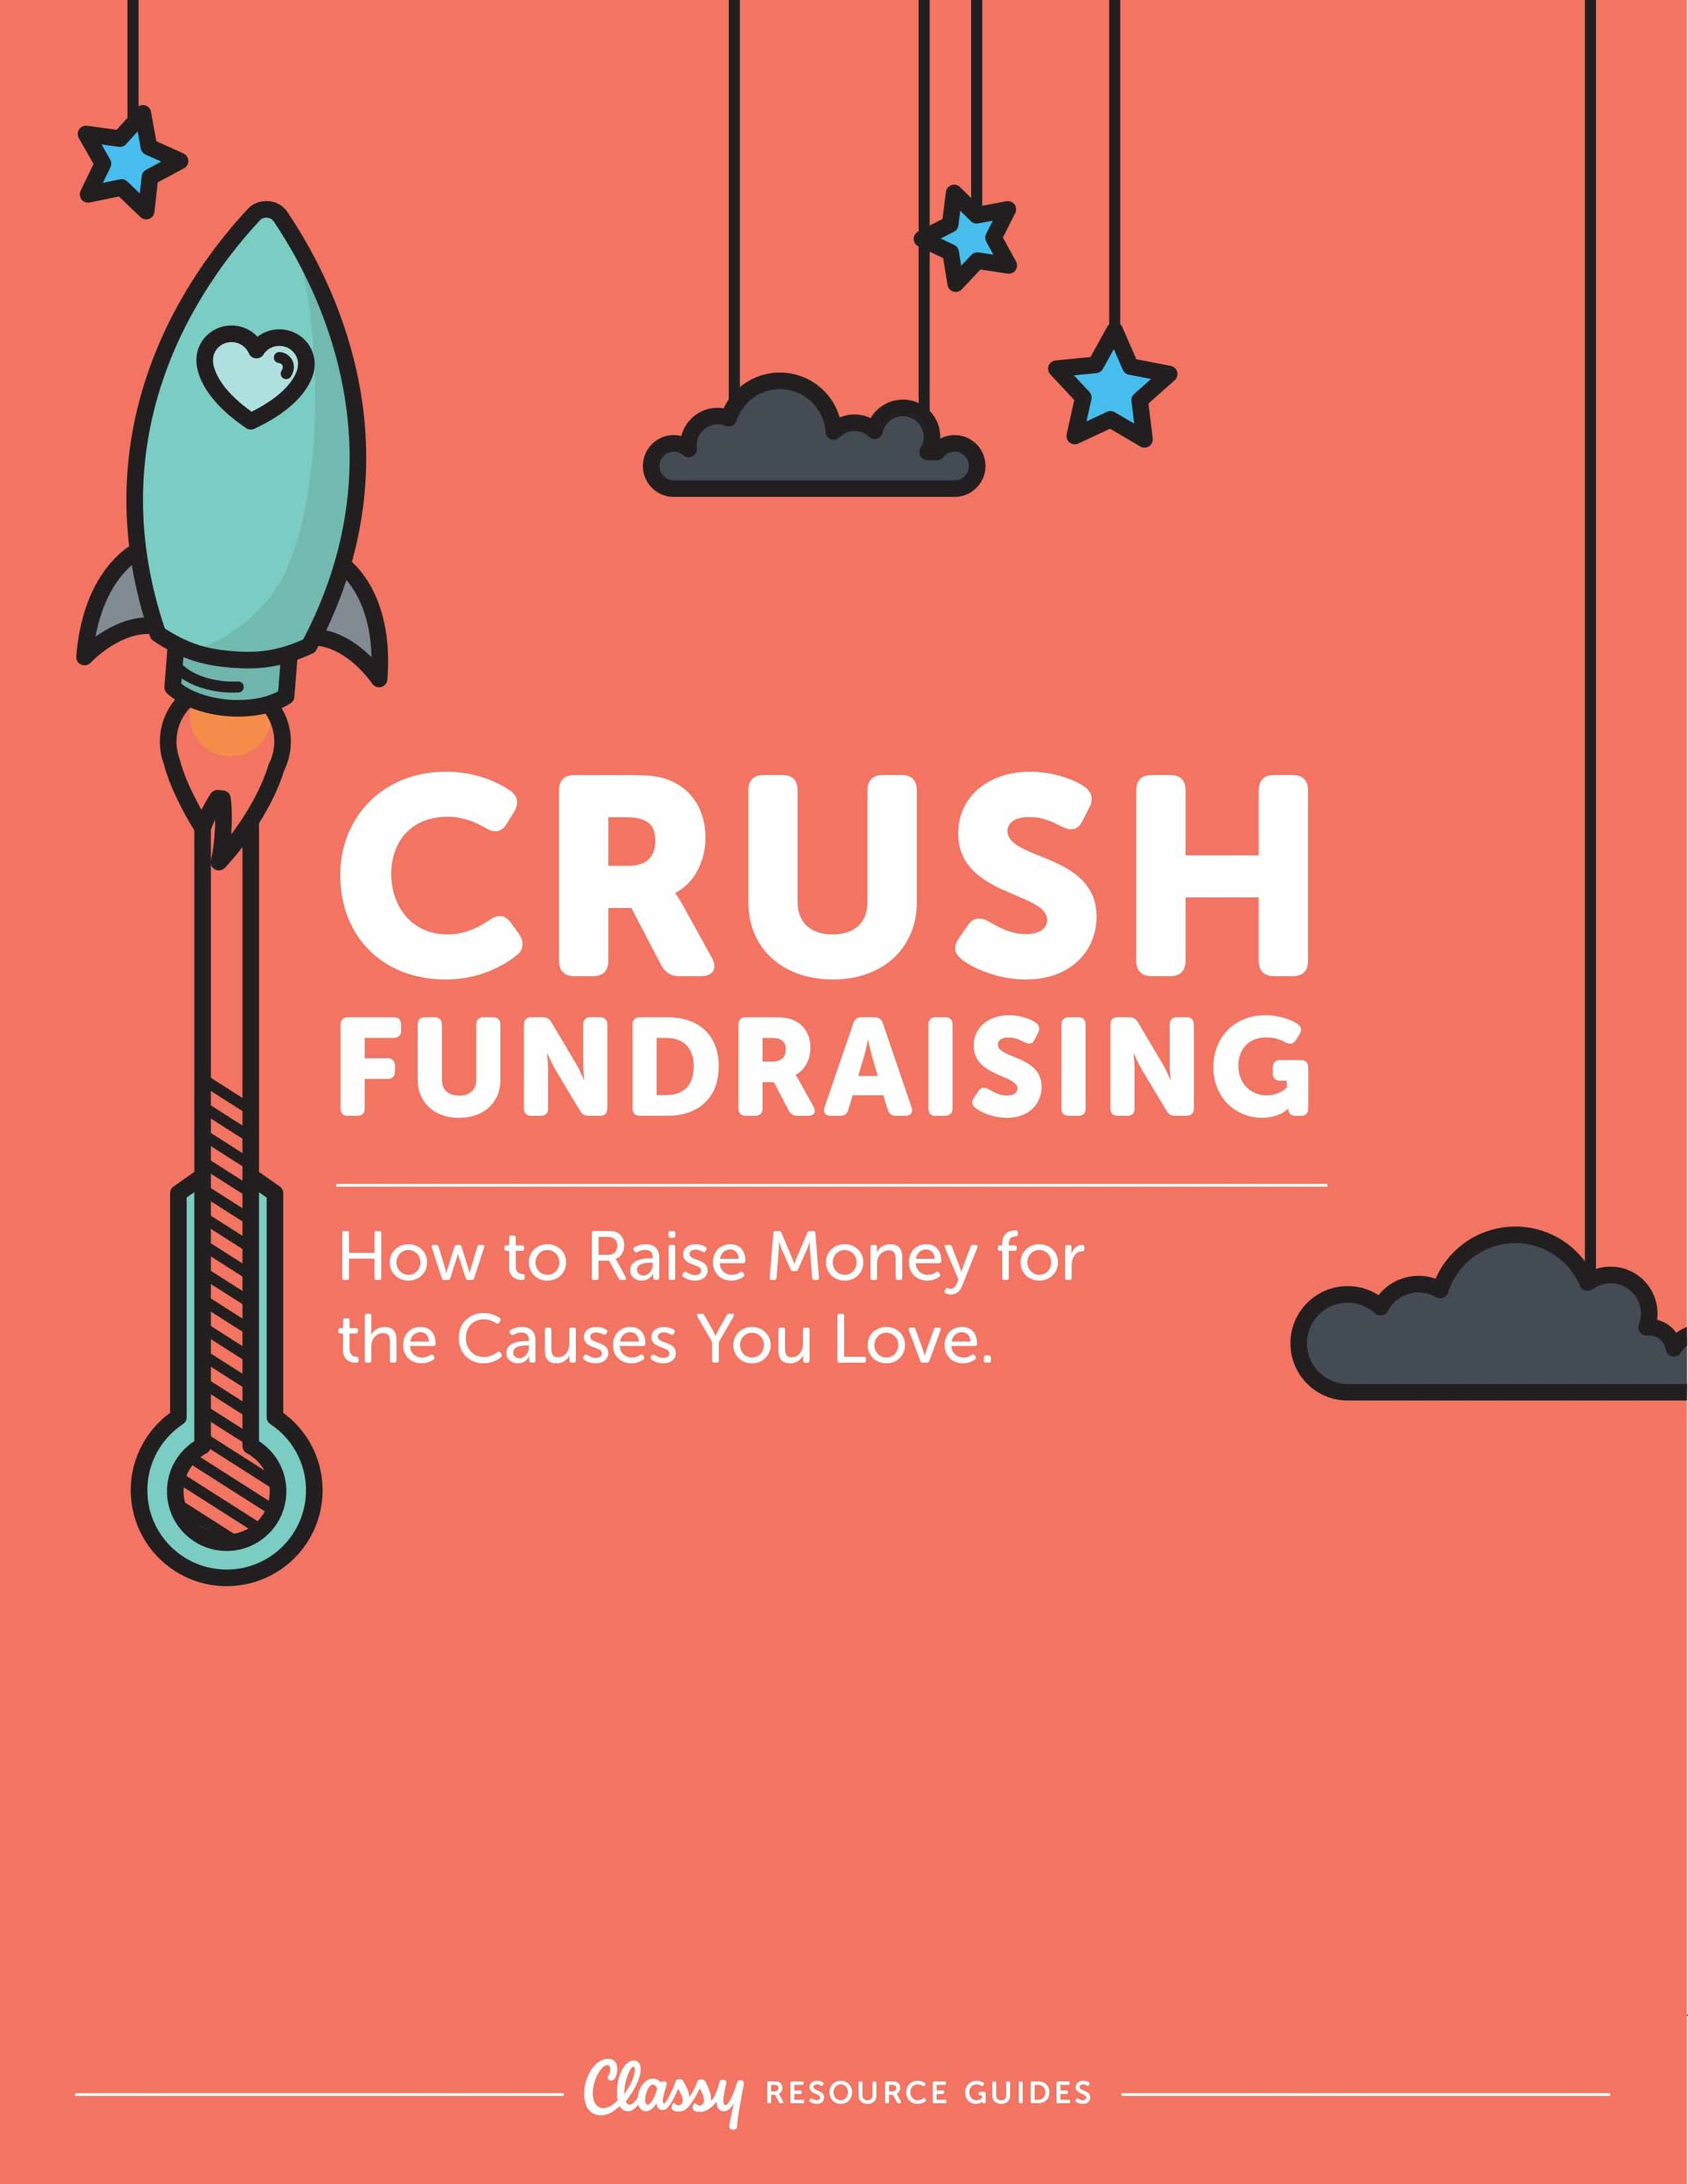 a thorough must-read guide for any fundraiser